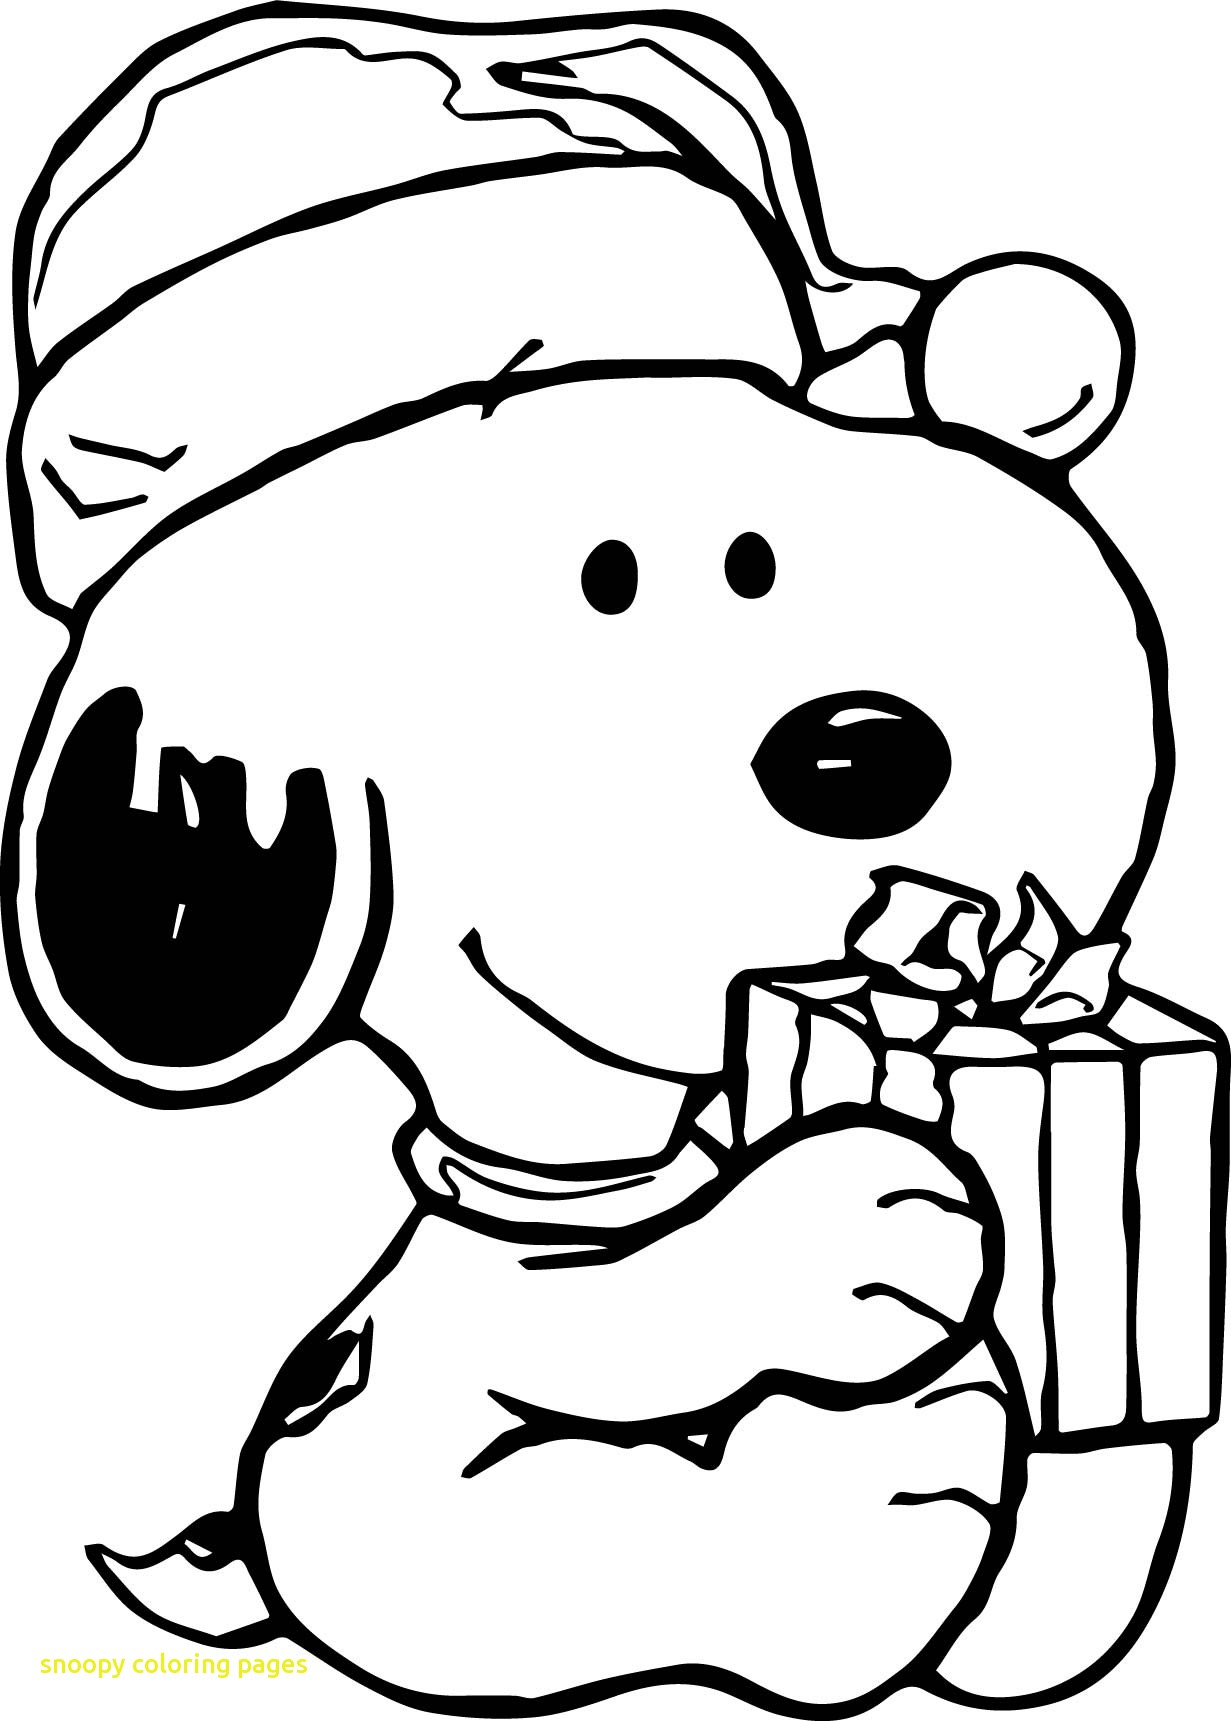 snoppy coloring pages - photo#23